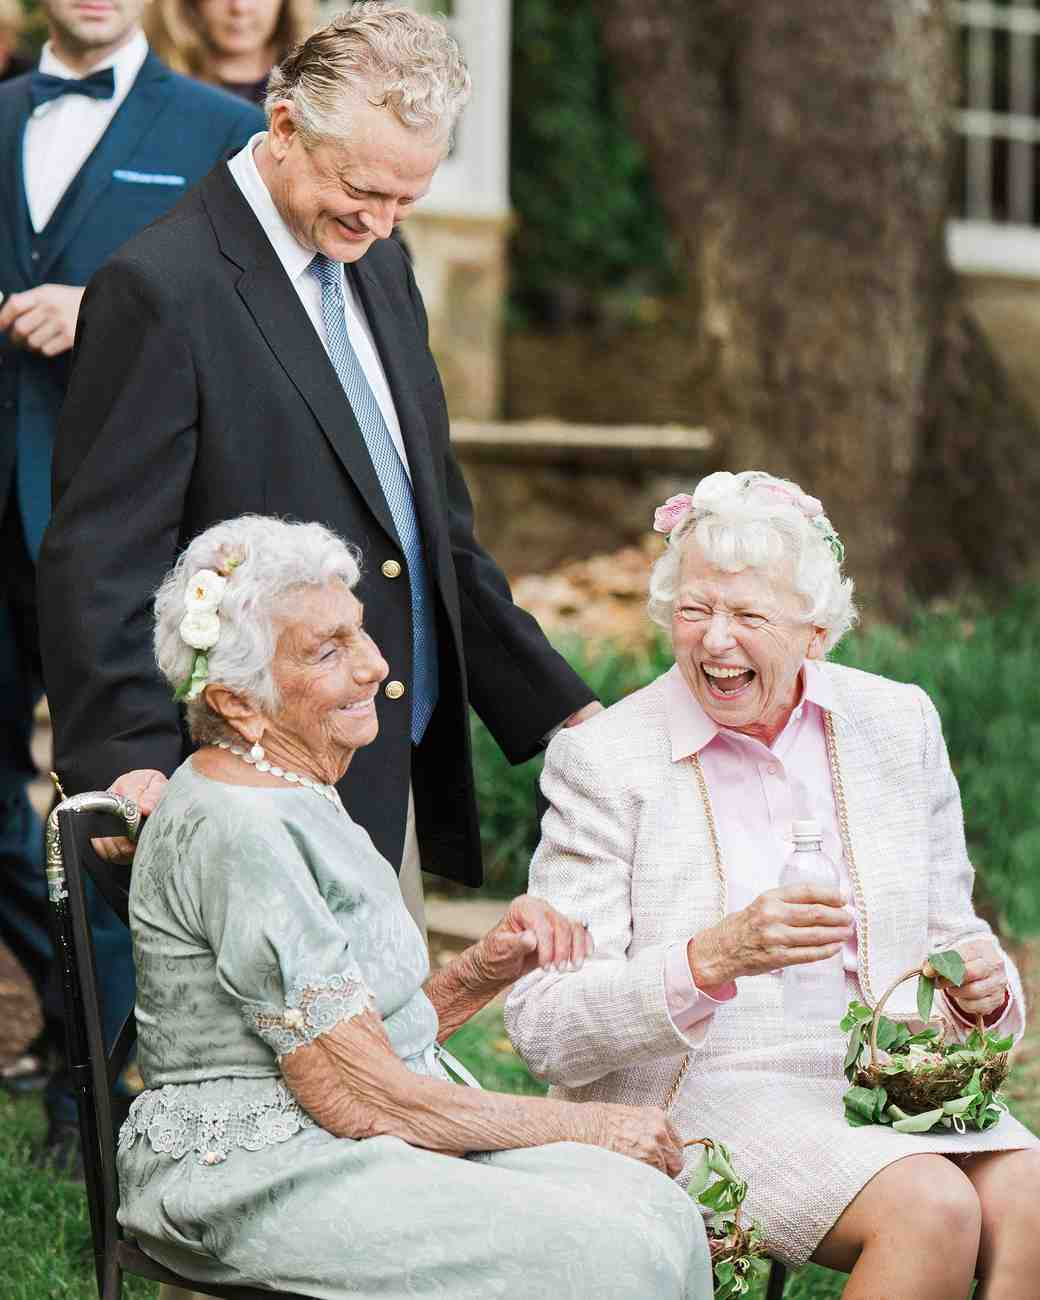 Grandmothers Wearing Flower Crowns at Wedding